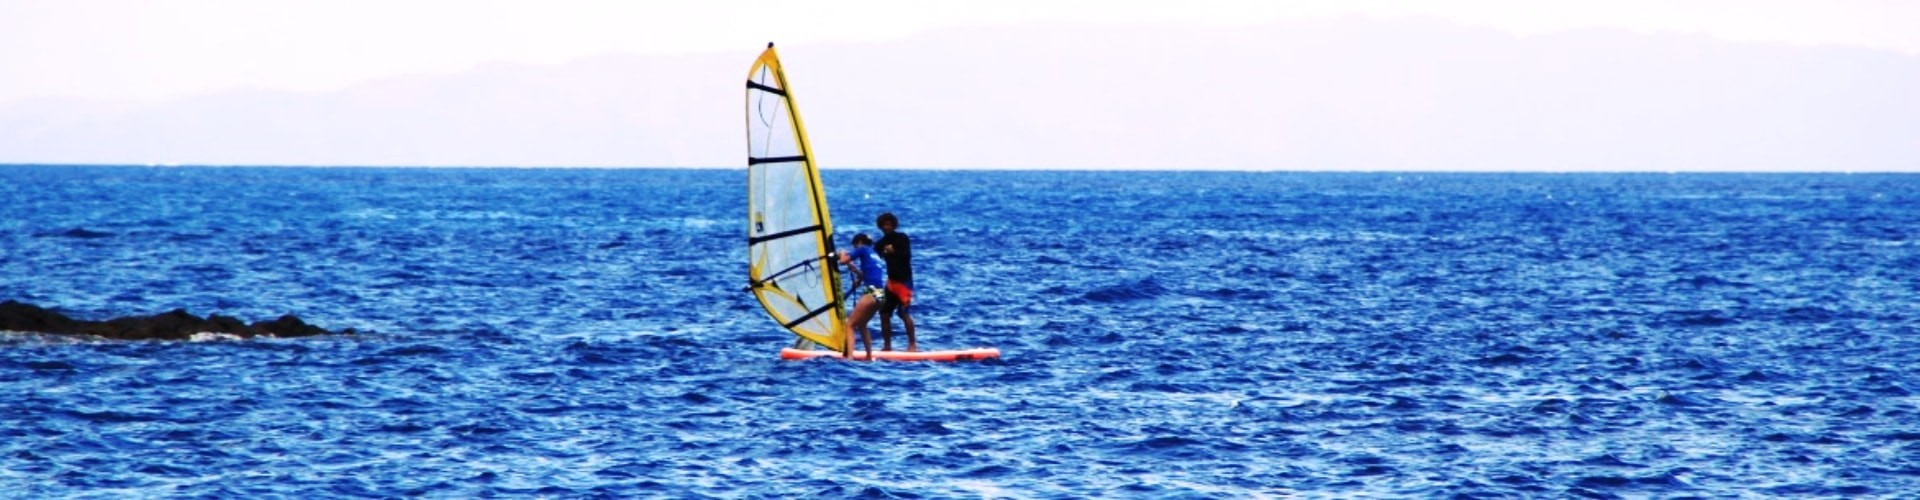 Windsurf Experience in Madeira Island